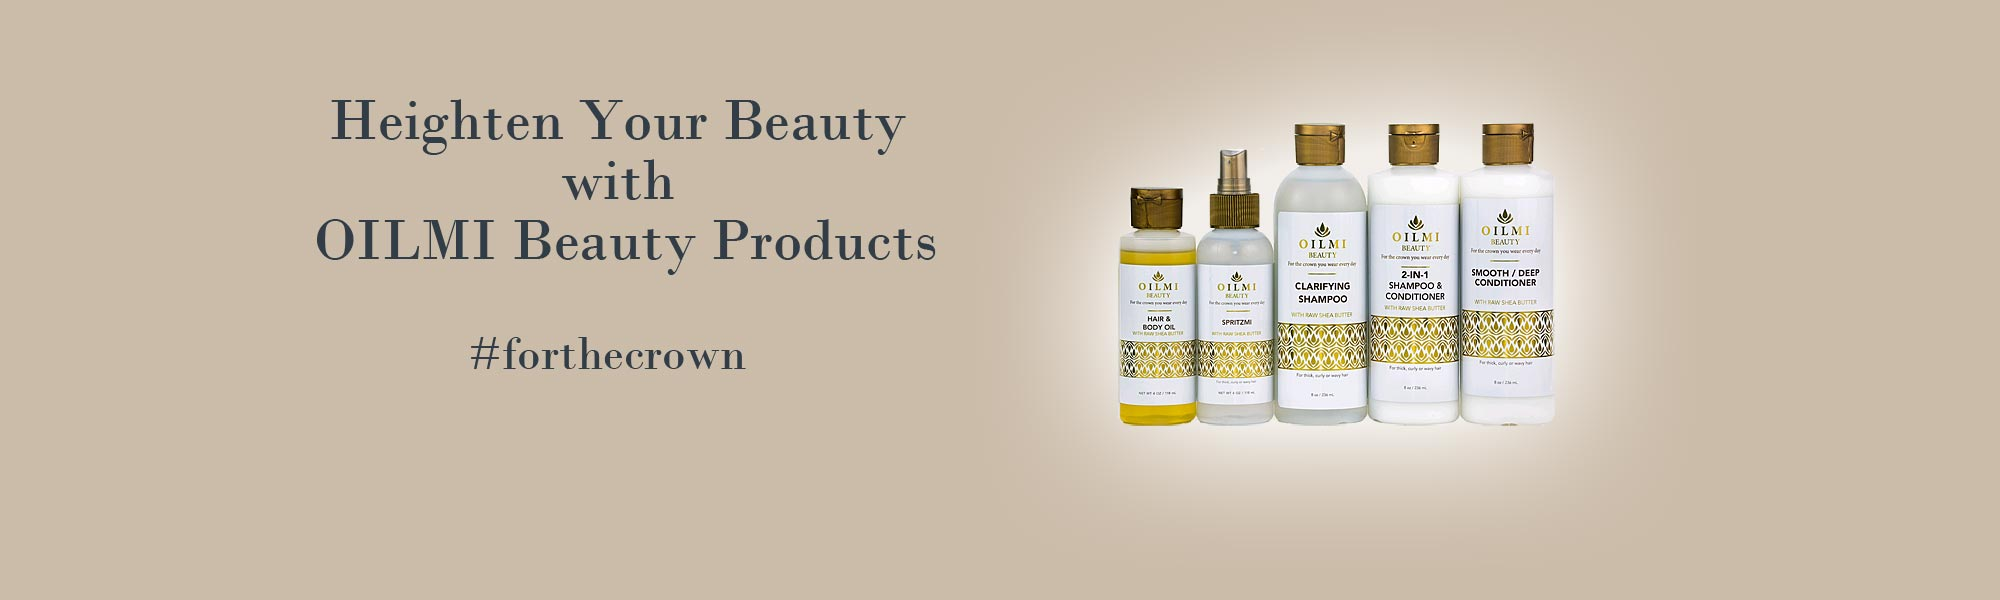 Products Oilmi Beauty